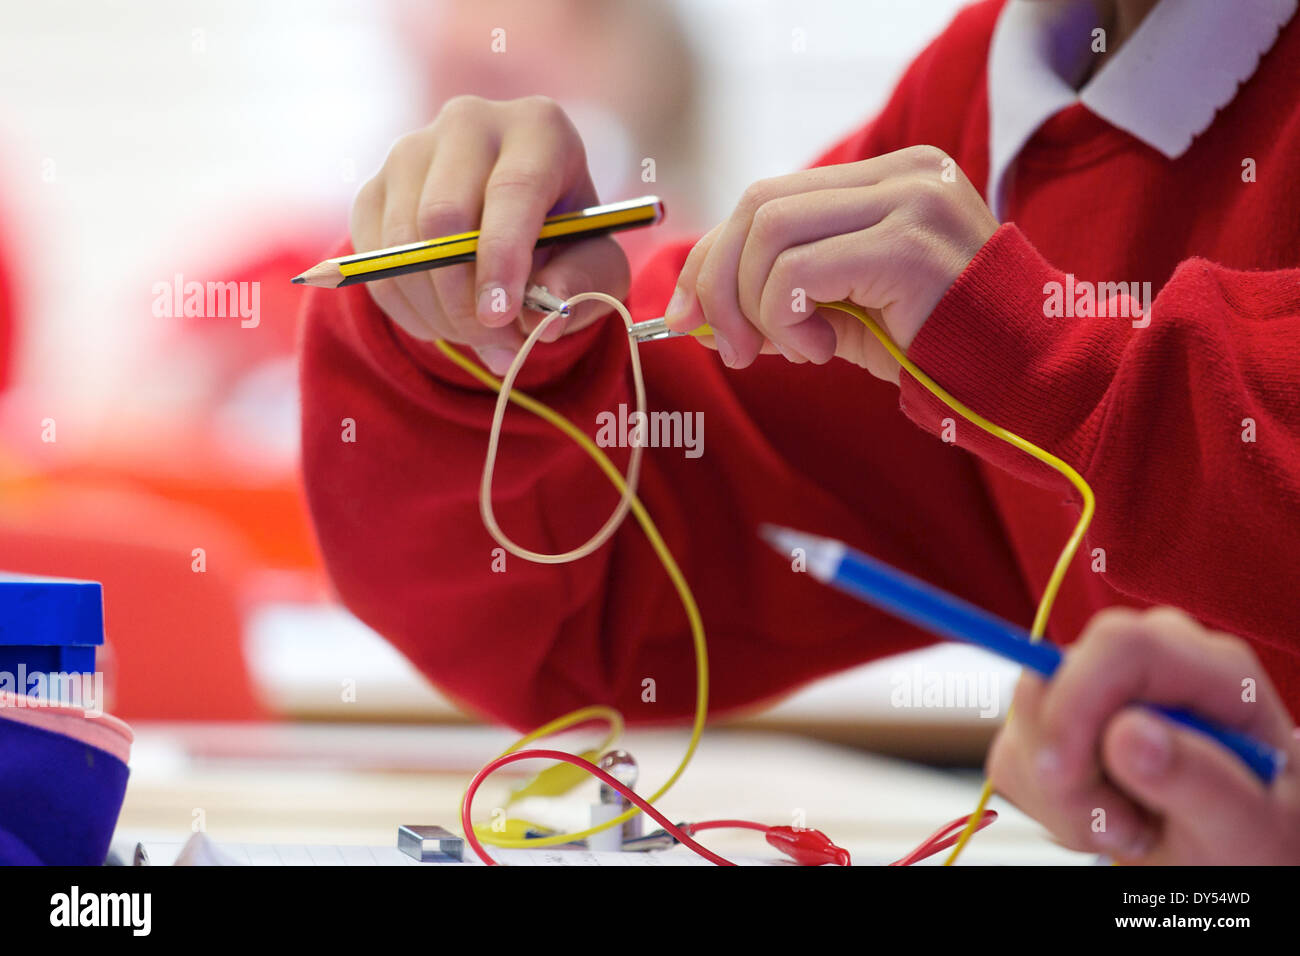 Children in a UK primary school science experiment with